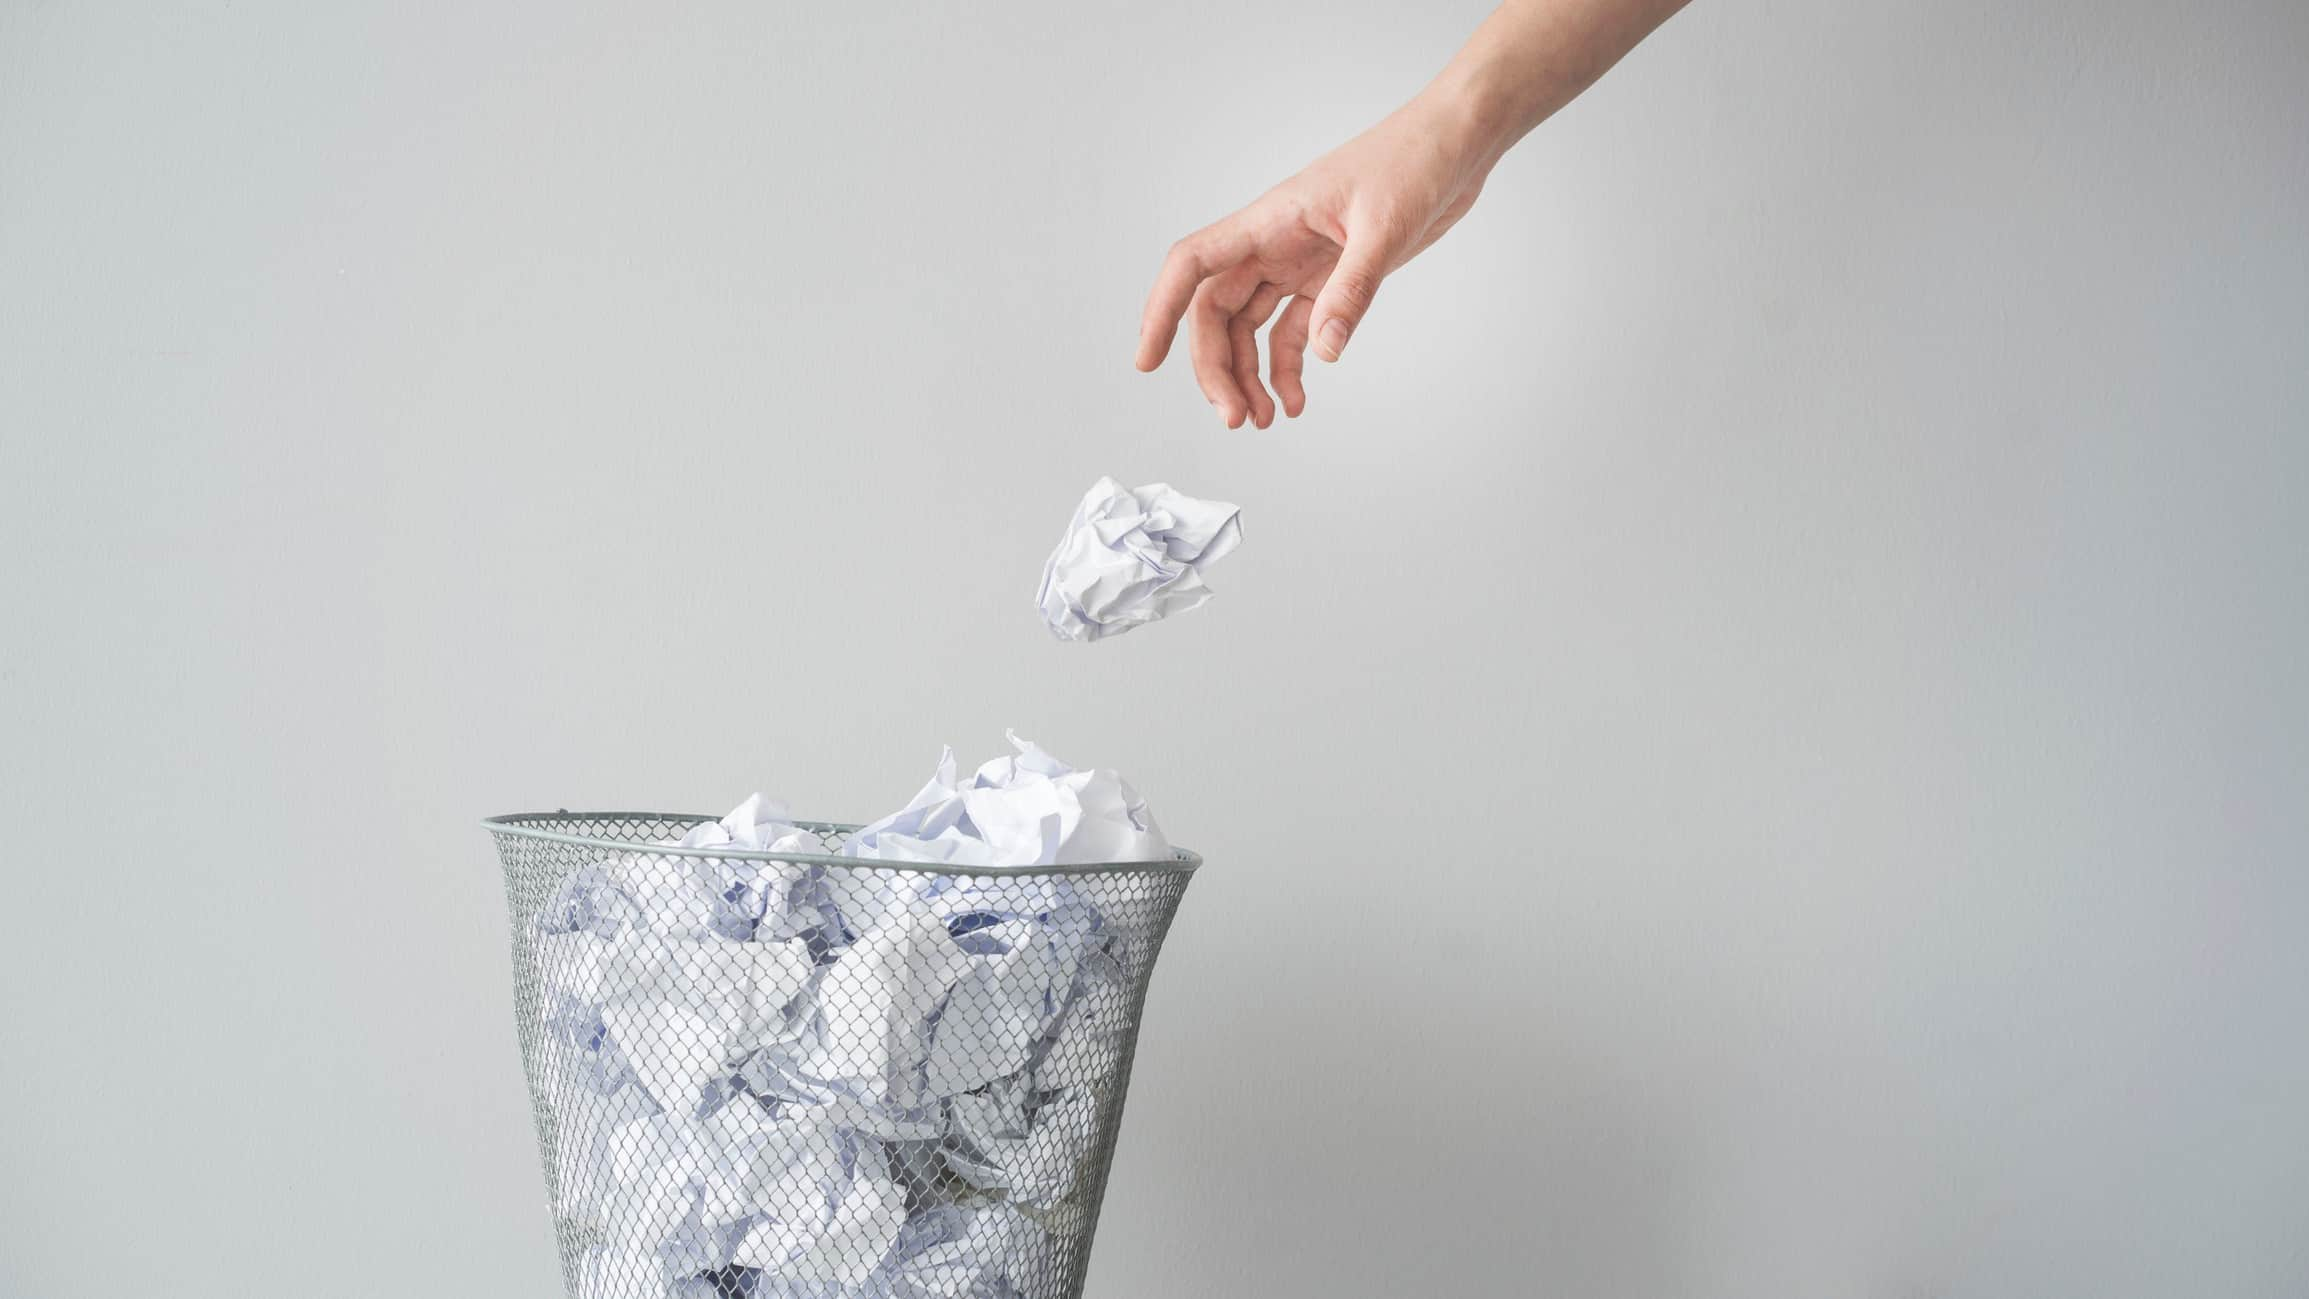 Hand throwing scrunched up paper in rubbish bin